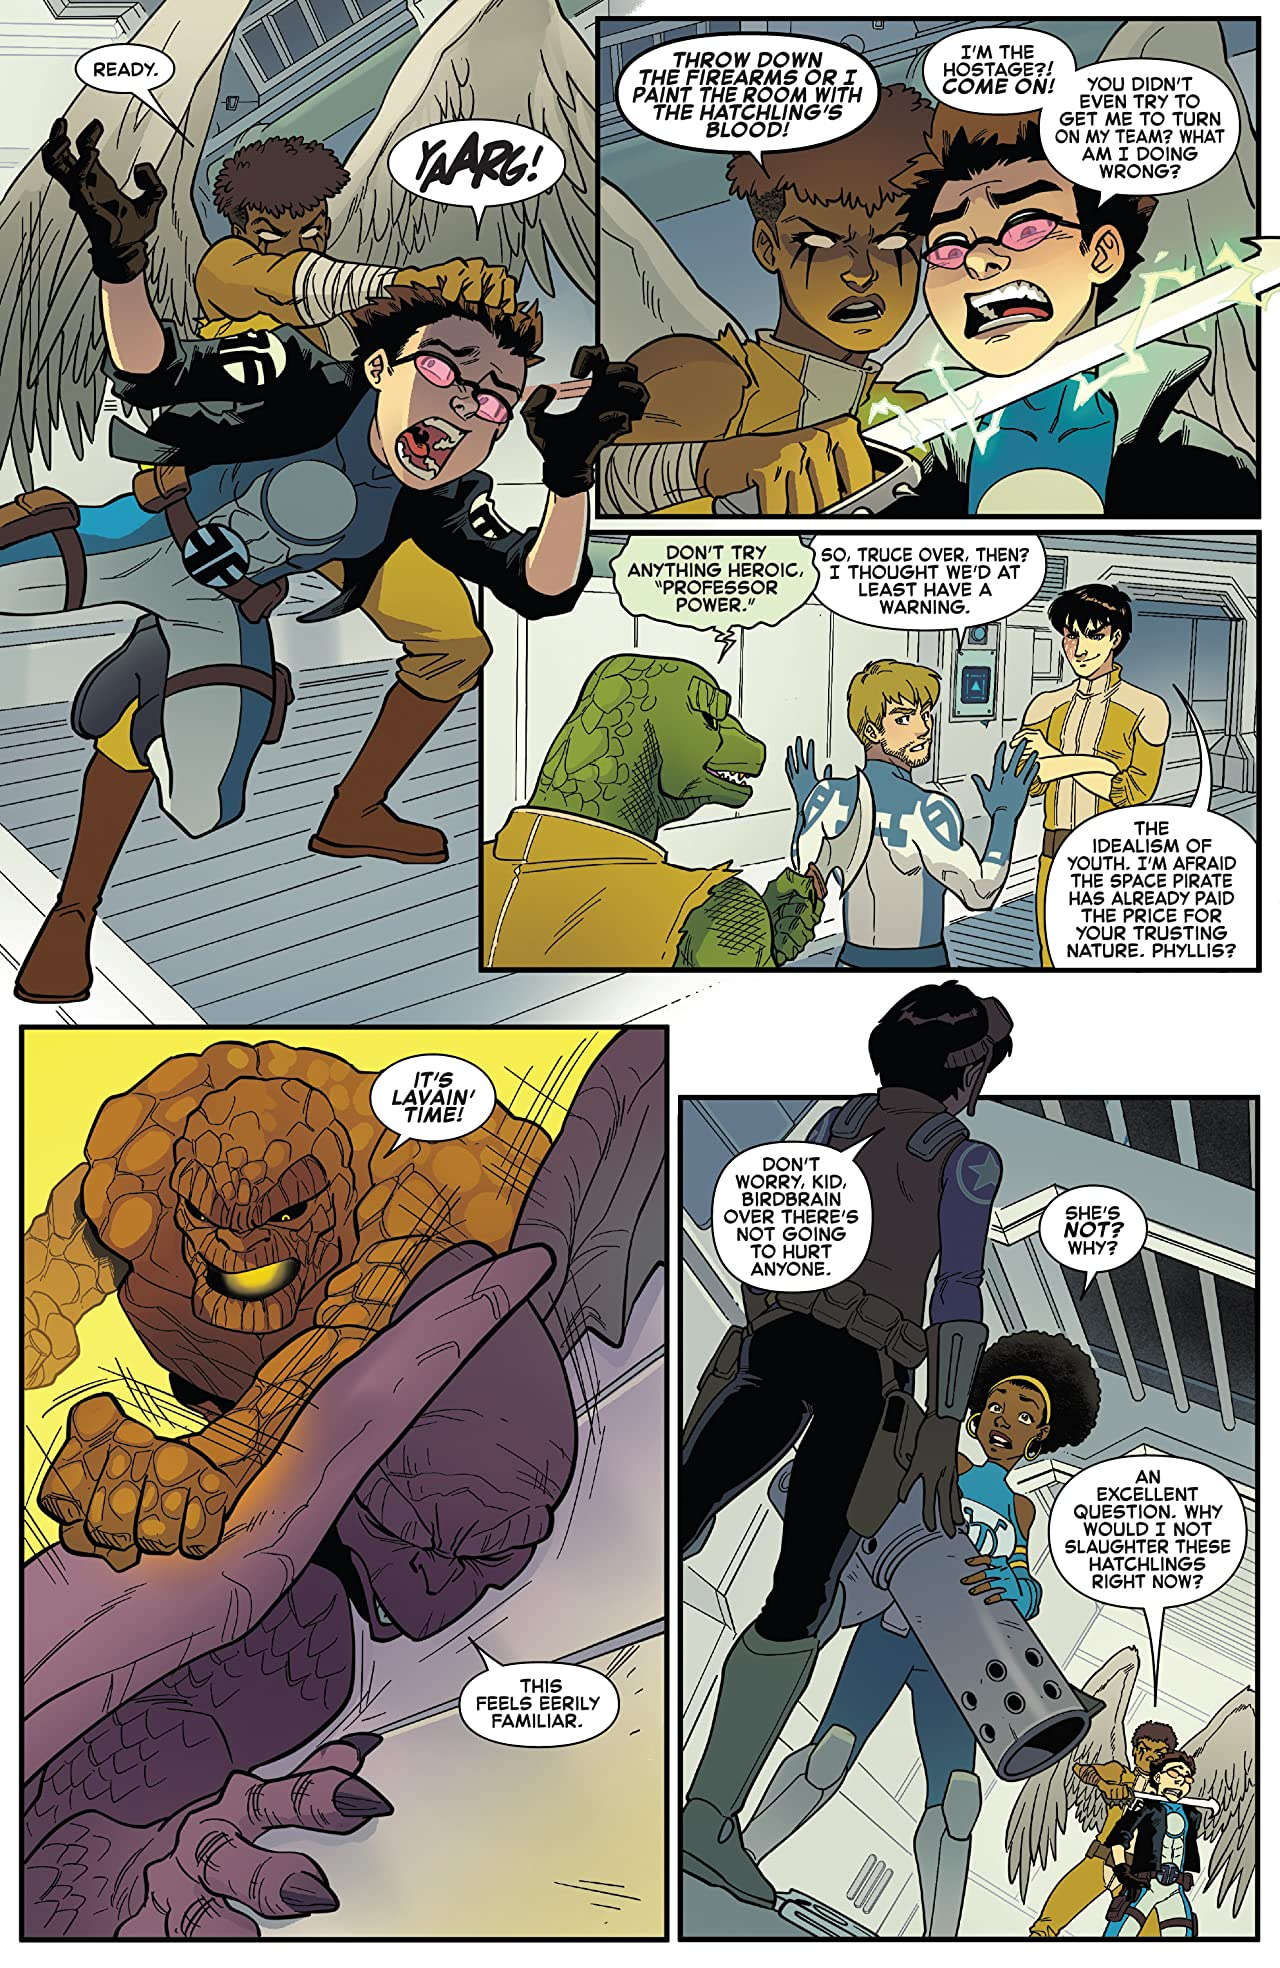 Future Foundation (2019) #4